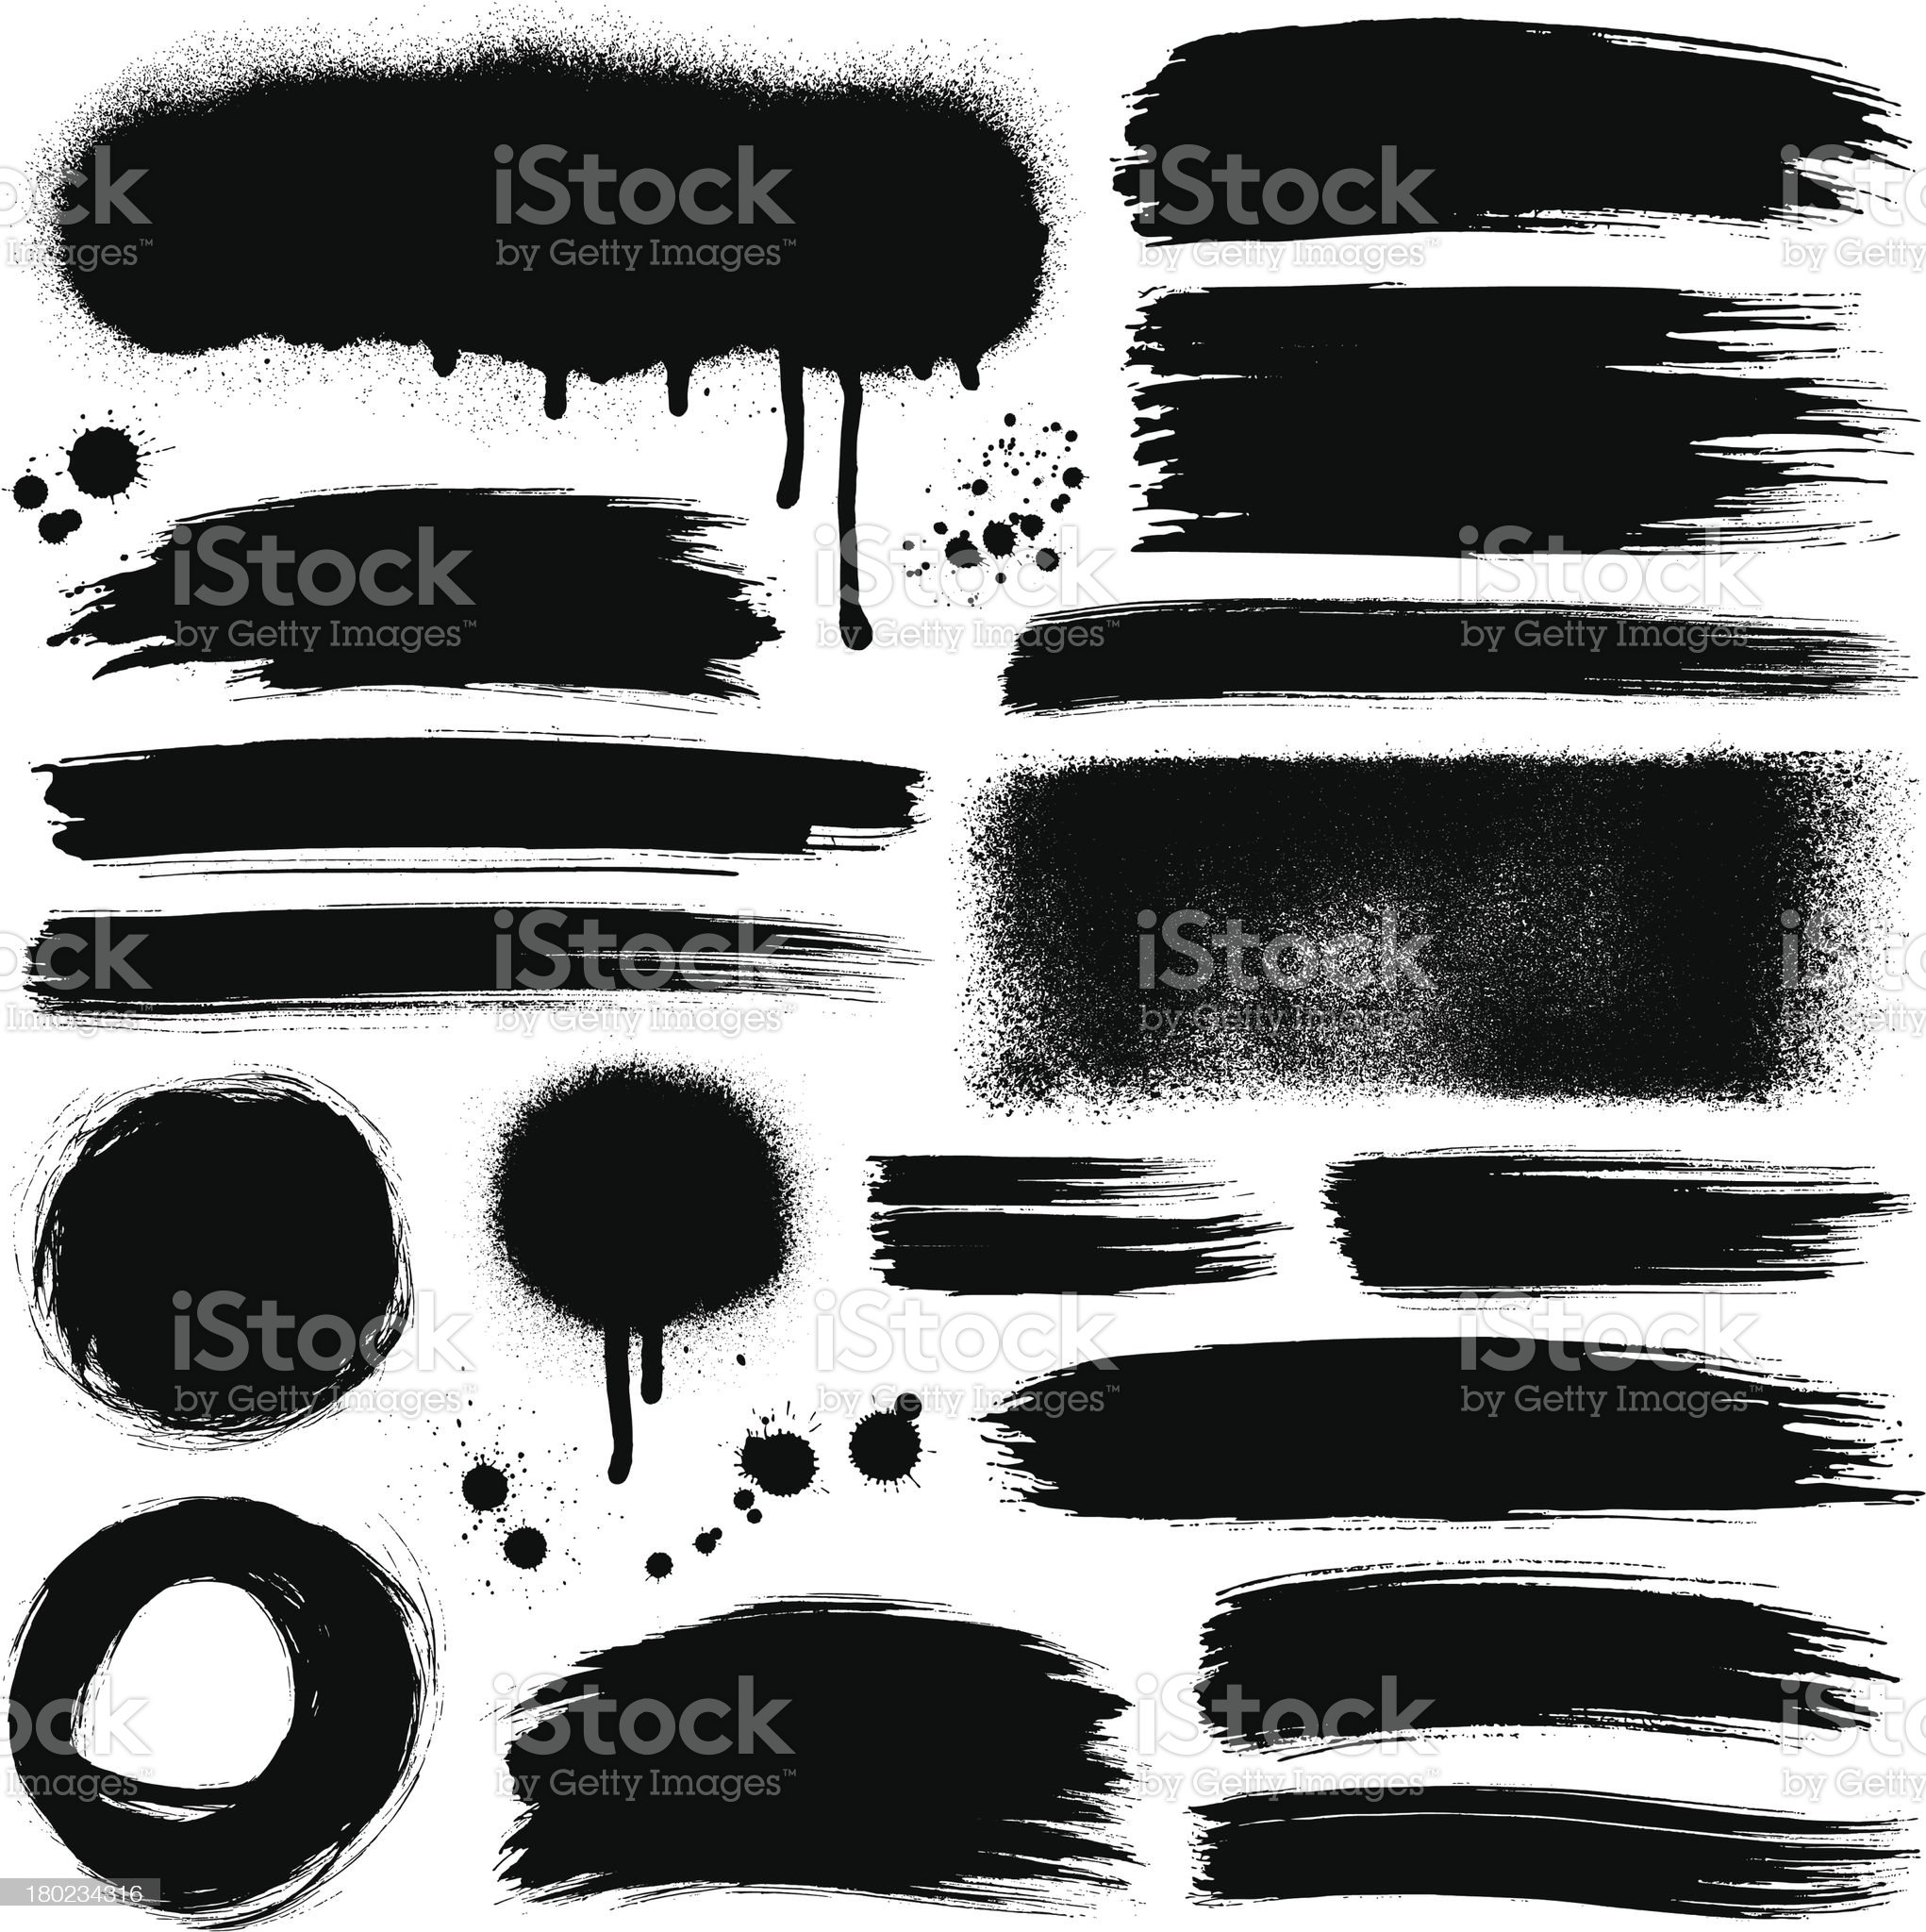 Brush strokes and paint backgrounds royalty-free stock vector art